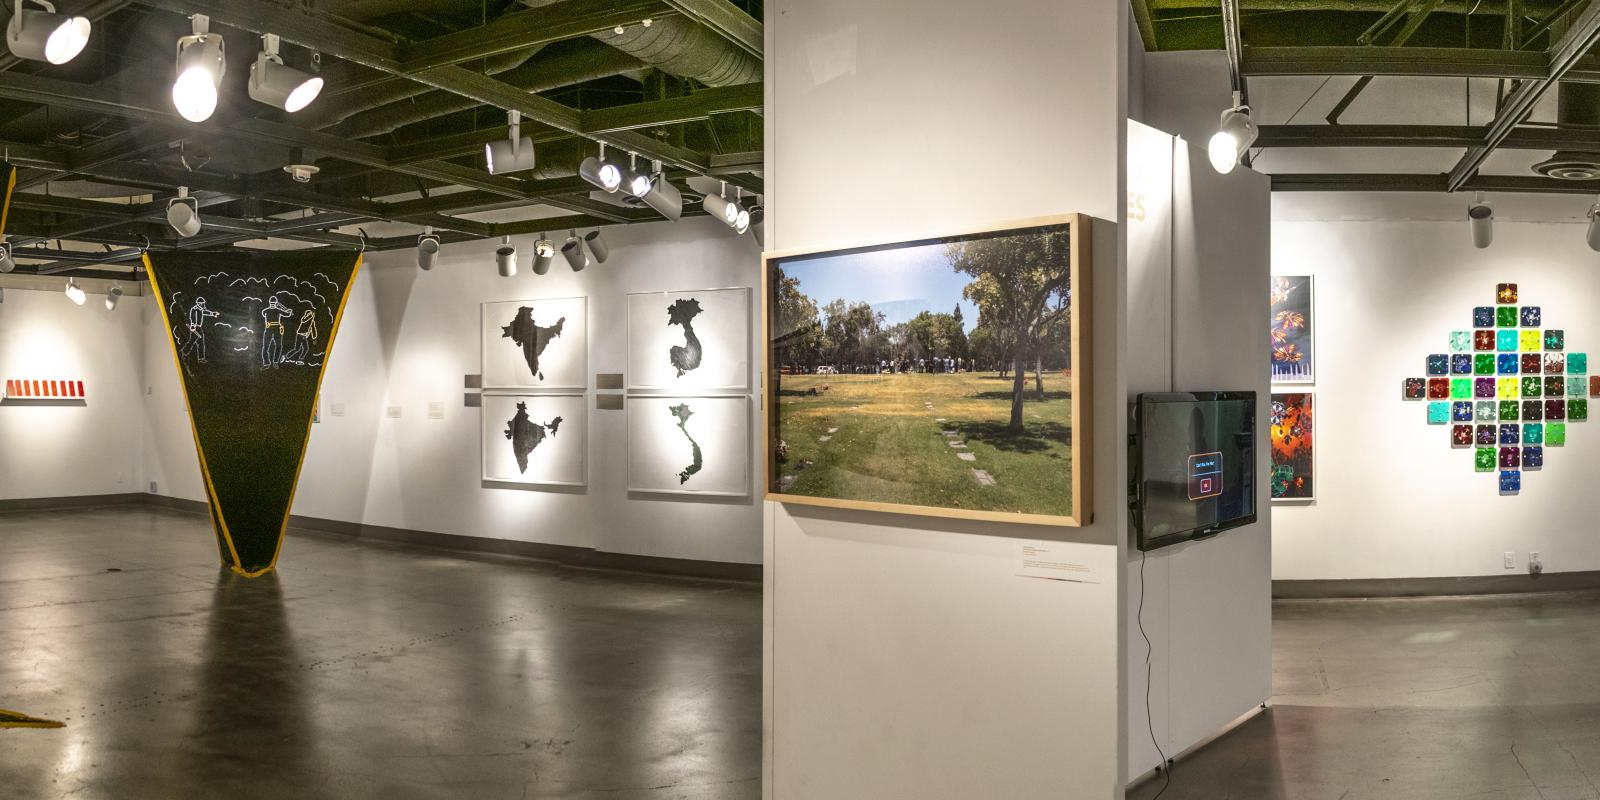 Back view of the gallery, Exhibition: Somewhere In Between, Nov 6, 2018 - Mar 17, 2019,  Co-curated by Michele Cairella Fillmore & Bia Gayotto, W. Keith & Janet Kellogg Art Gallery, Cal Poly Pomona.